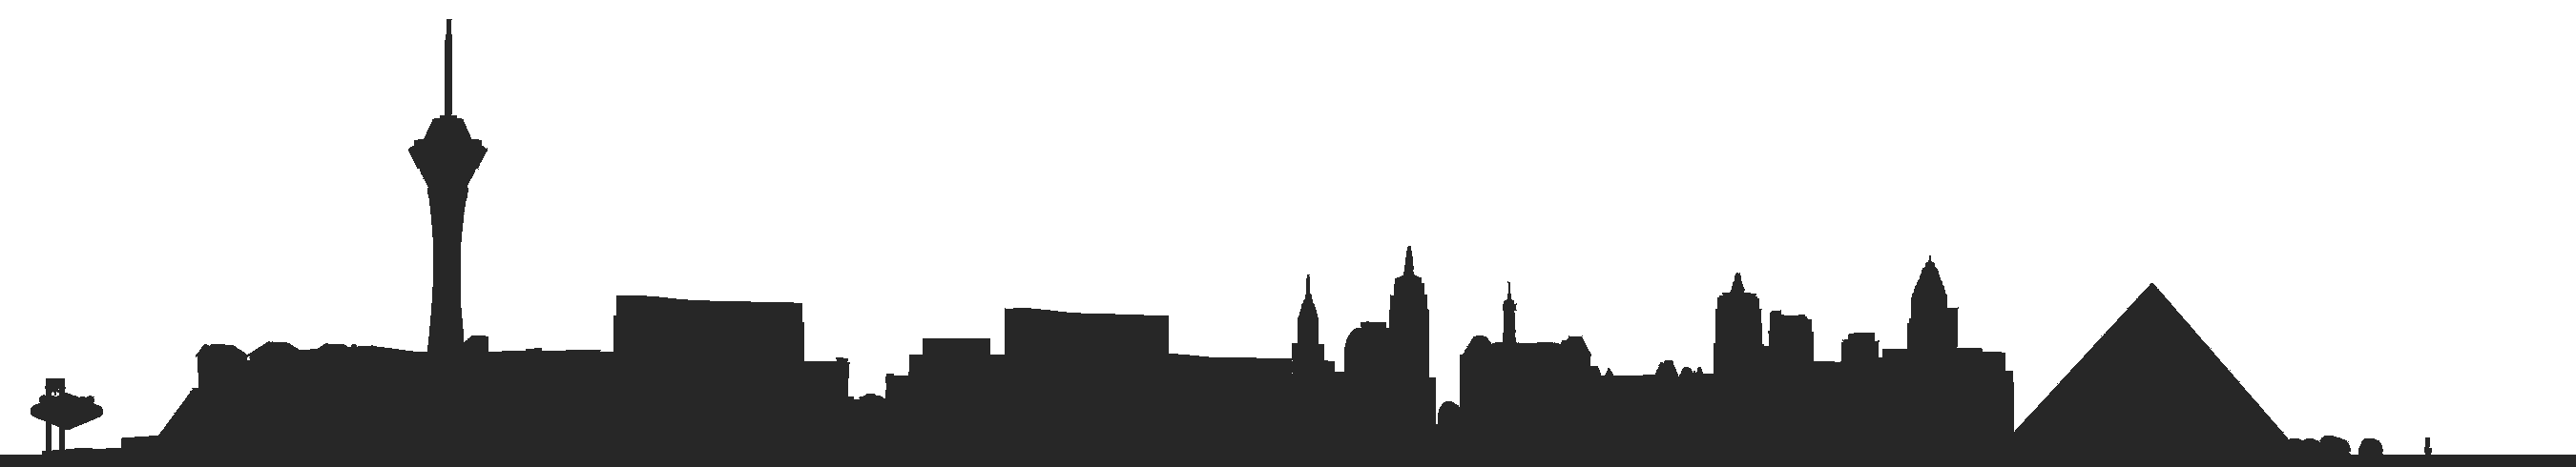 svg freeuse download Silhouette at getdrawings com. Las vegas clipart outline